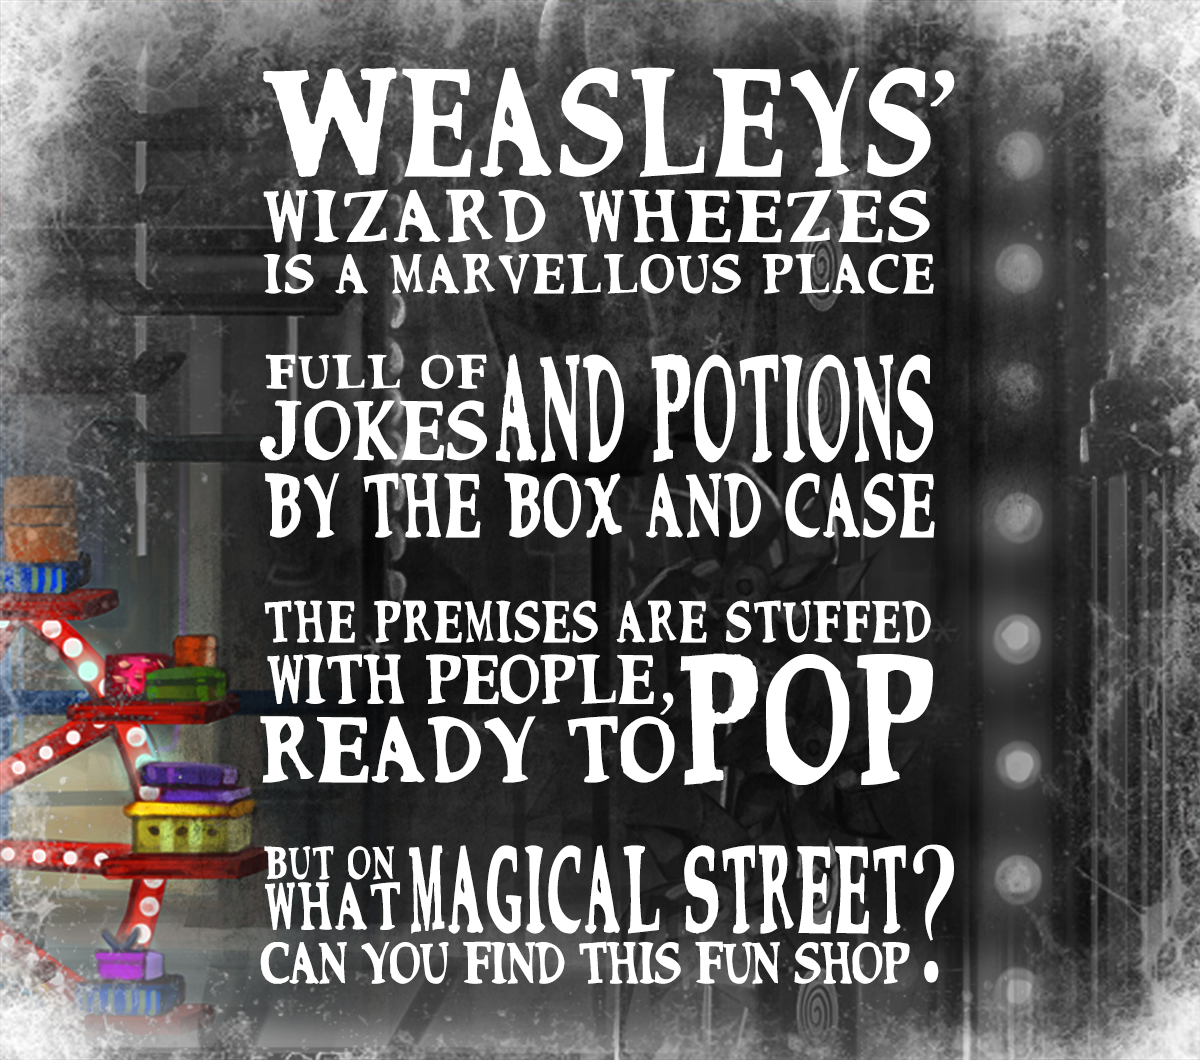 II° regalo. La risposta è: Diagon Alley